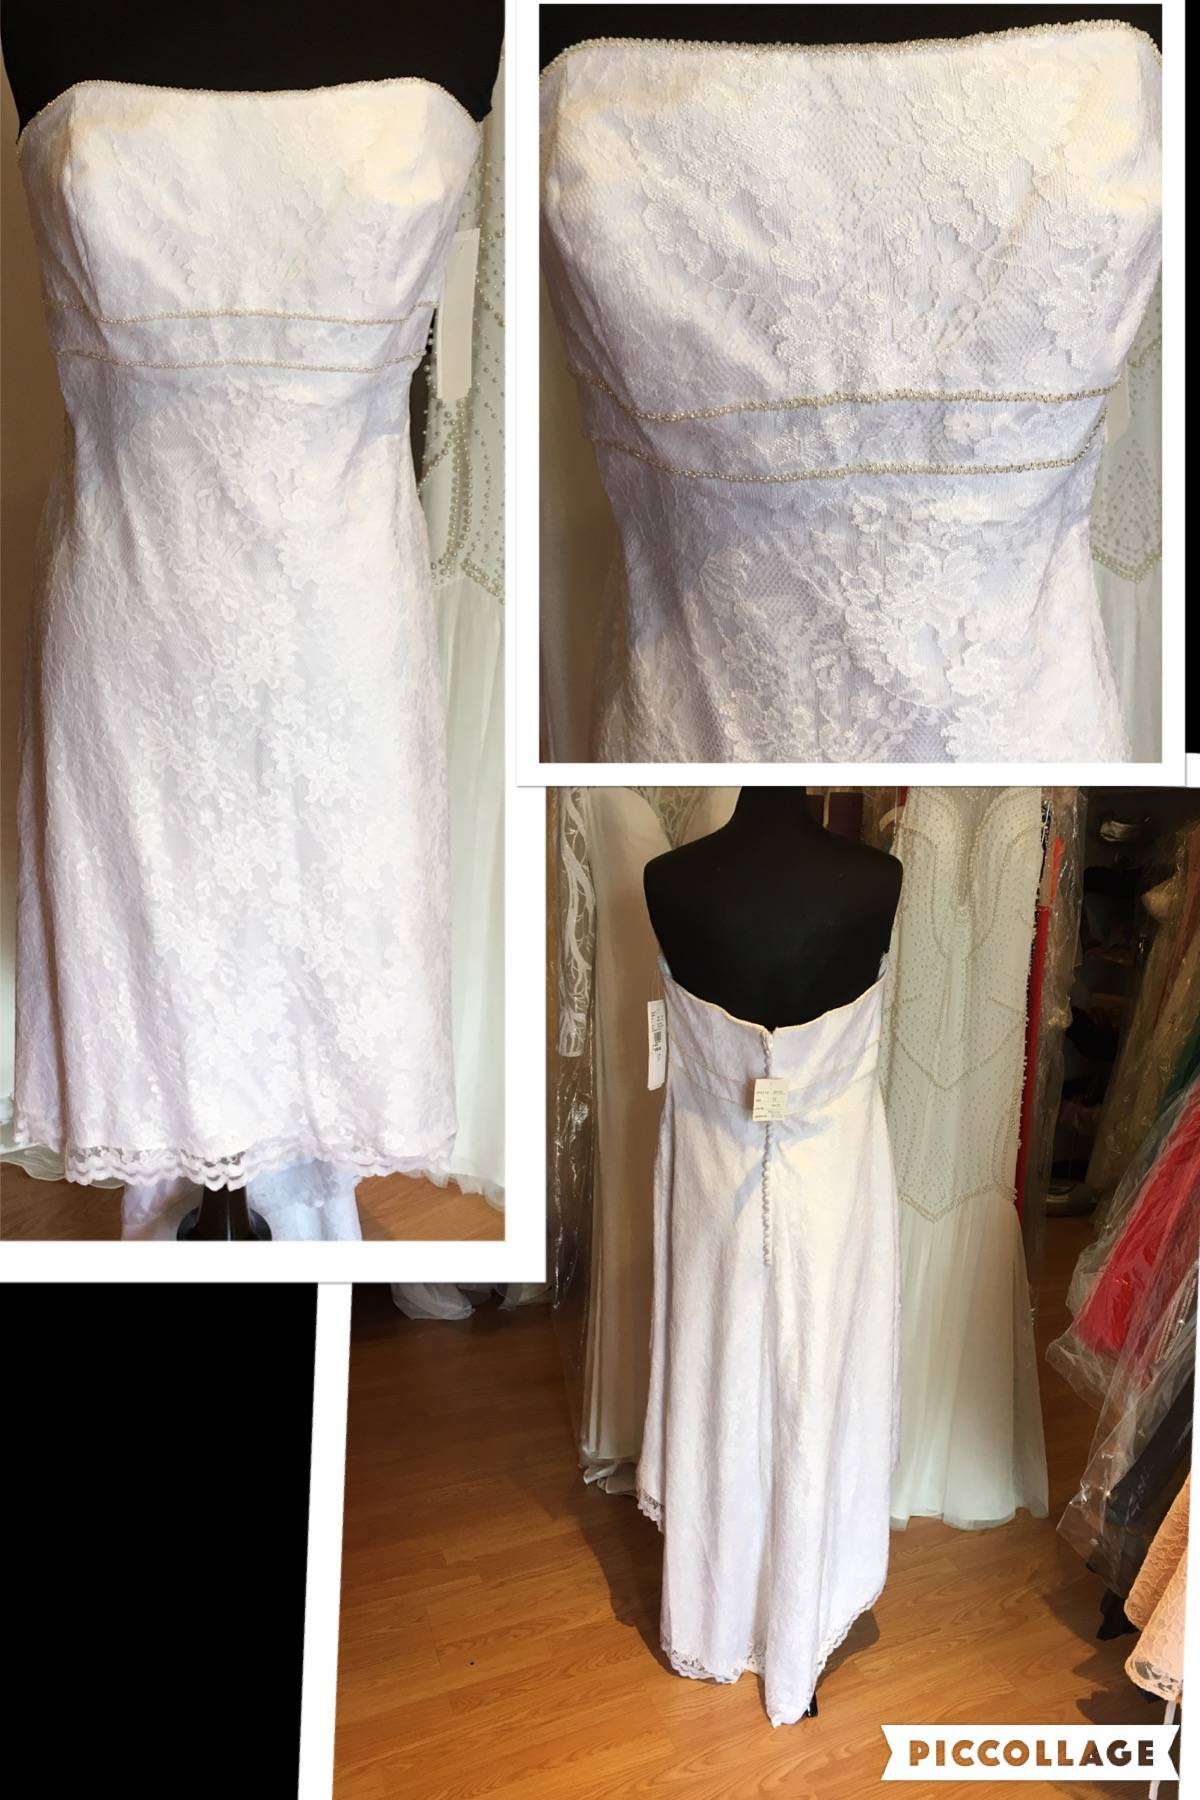 NWT DAVID'S BRIDAL LACE HIGH-LOW WEDDING GOWN SIZE 16 $200.00